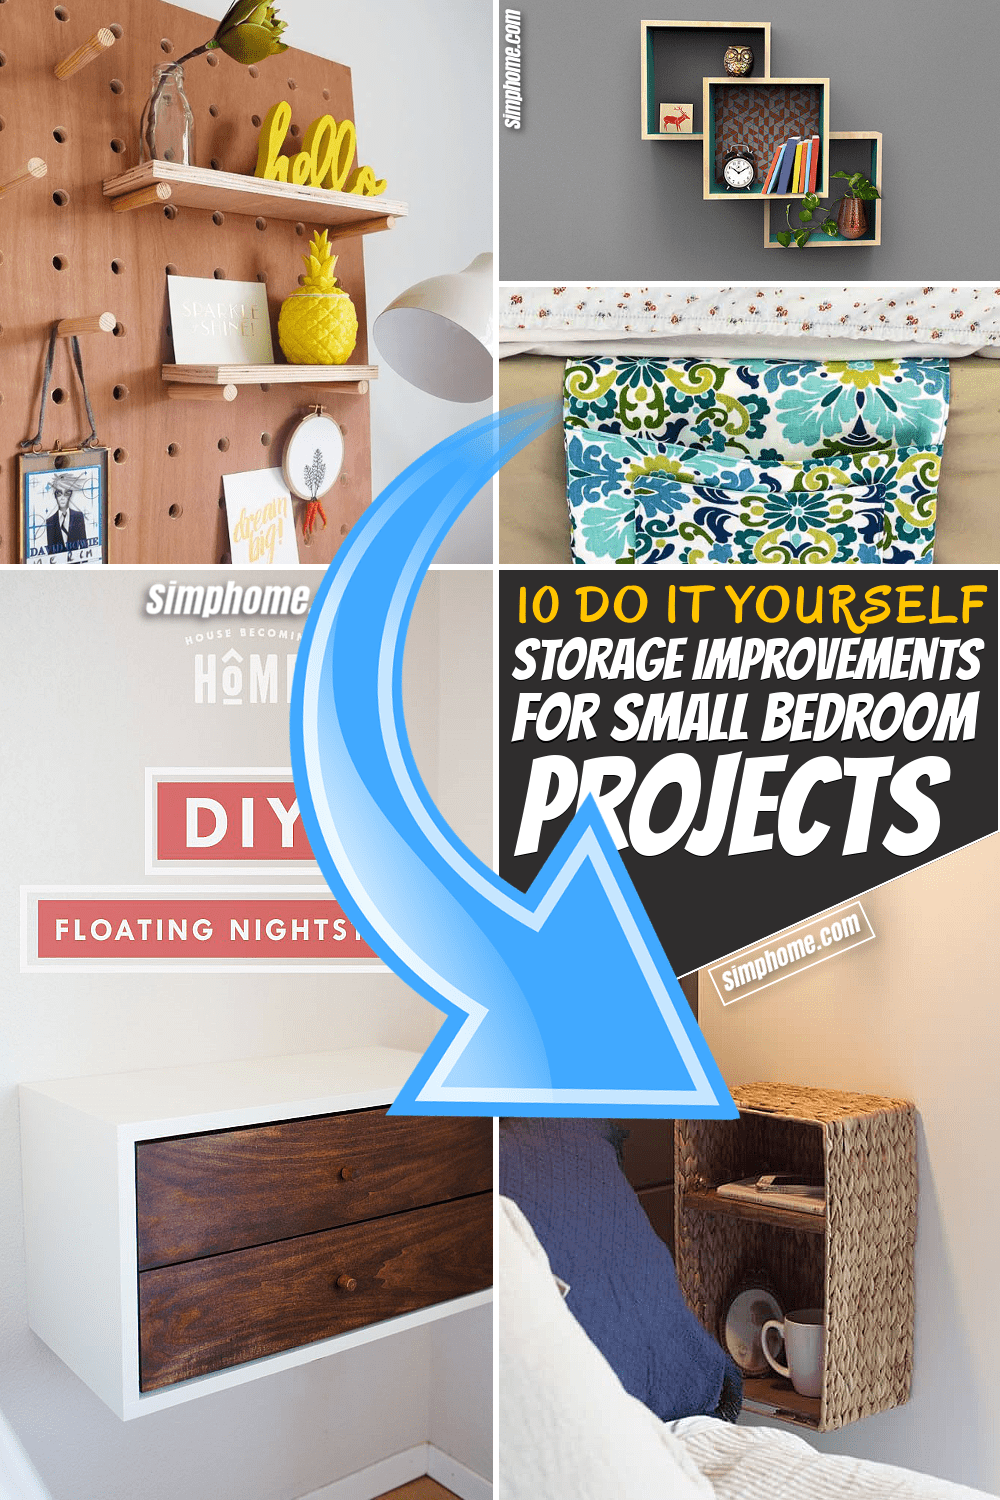 Simphome.com 10 DIY Storage Improvement Project for Small Bedroom Featured Pinterest Image